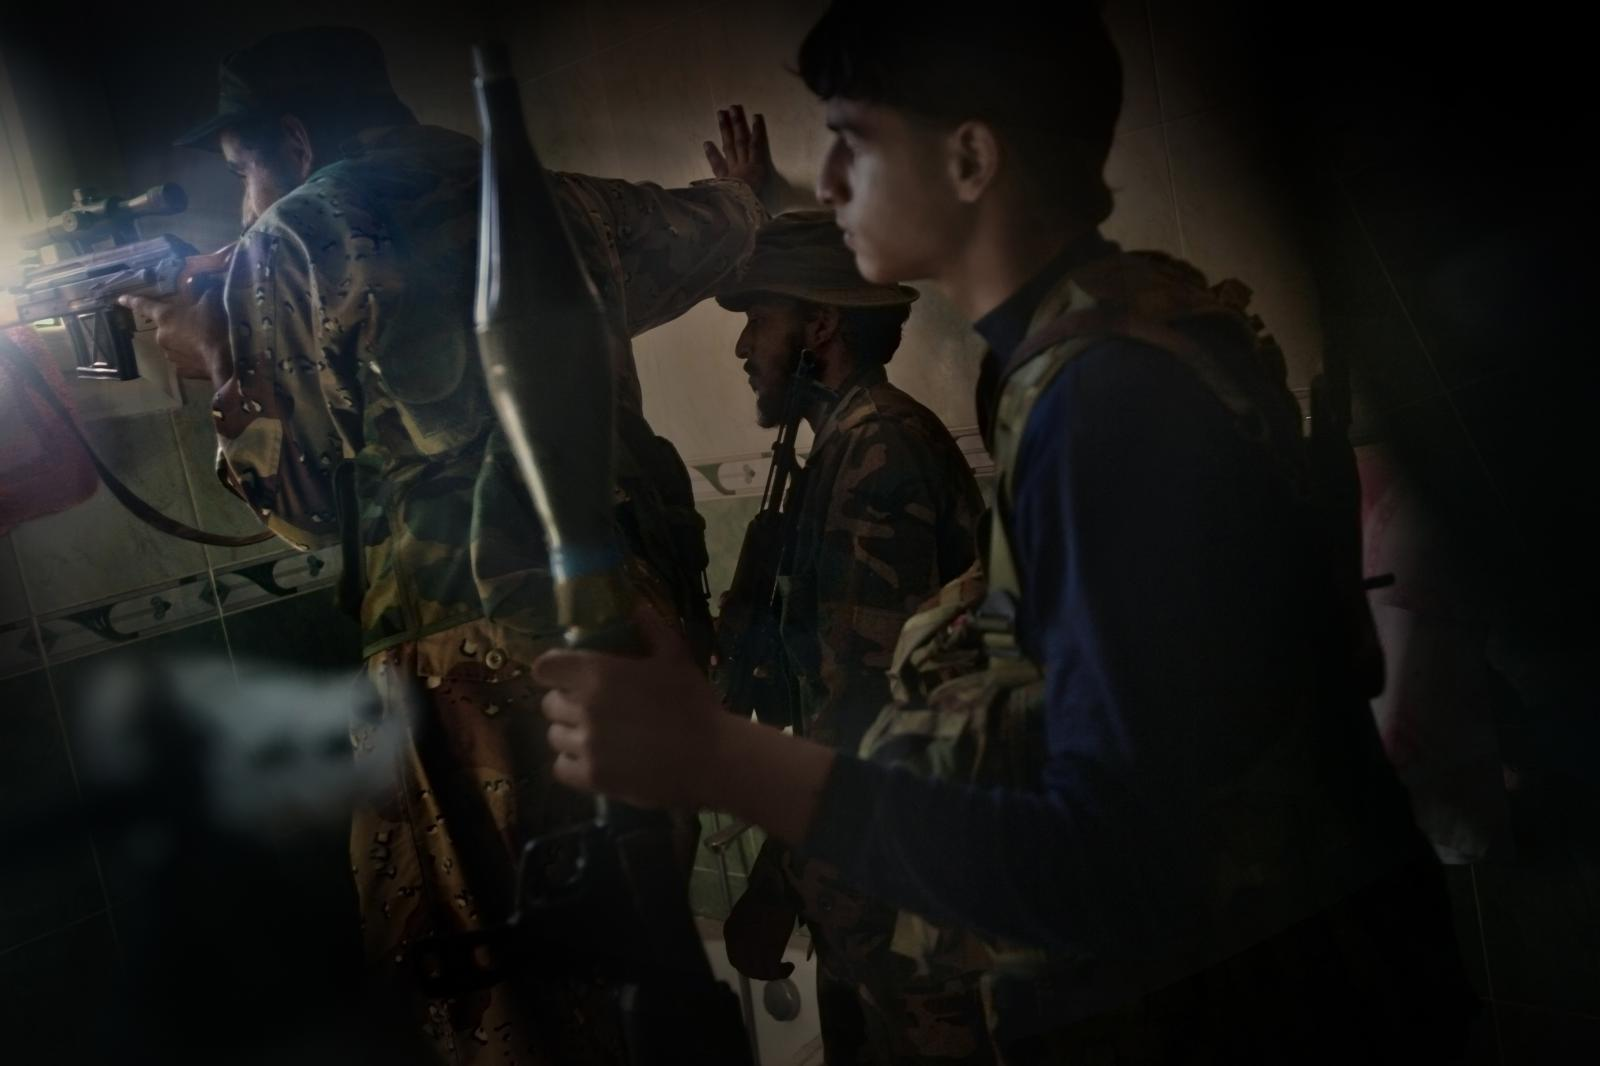 The final days of the Battle of Sirte, where Gaddafi was hiding before his death, and which signalled the end of hostilities (2011).